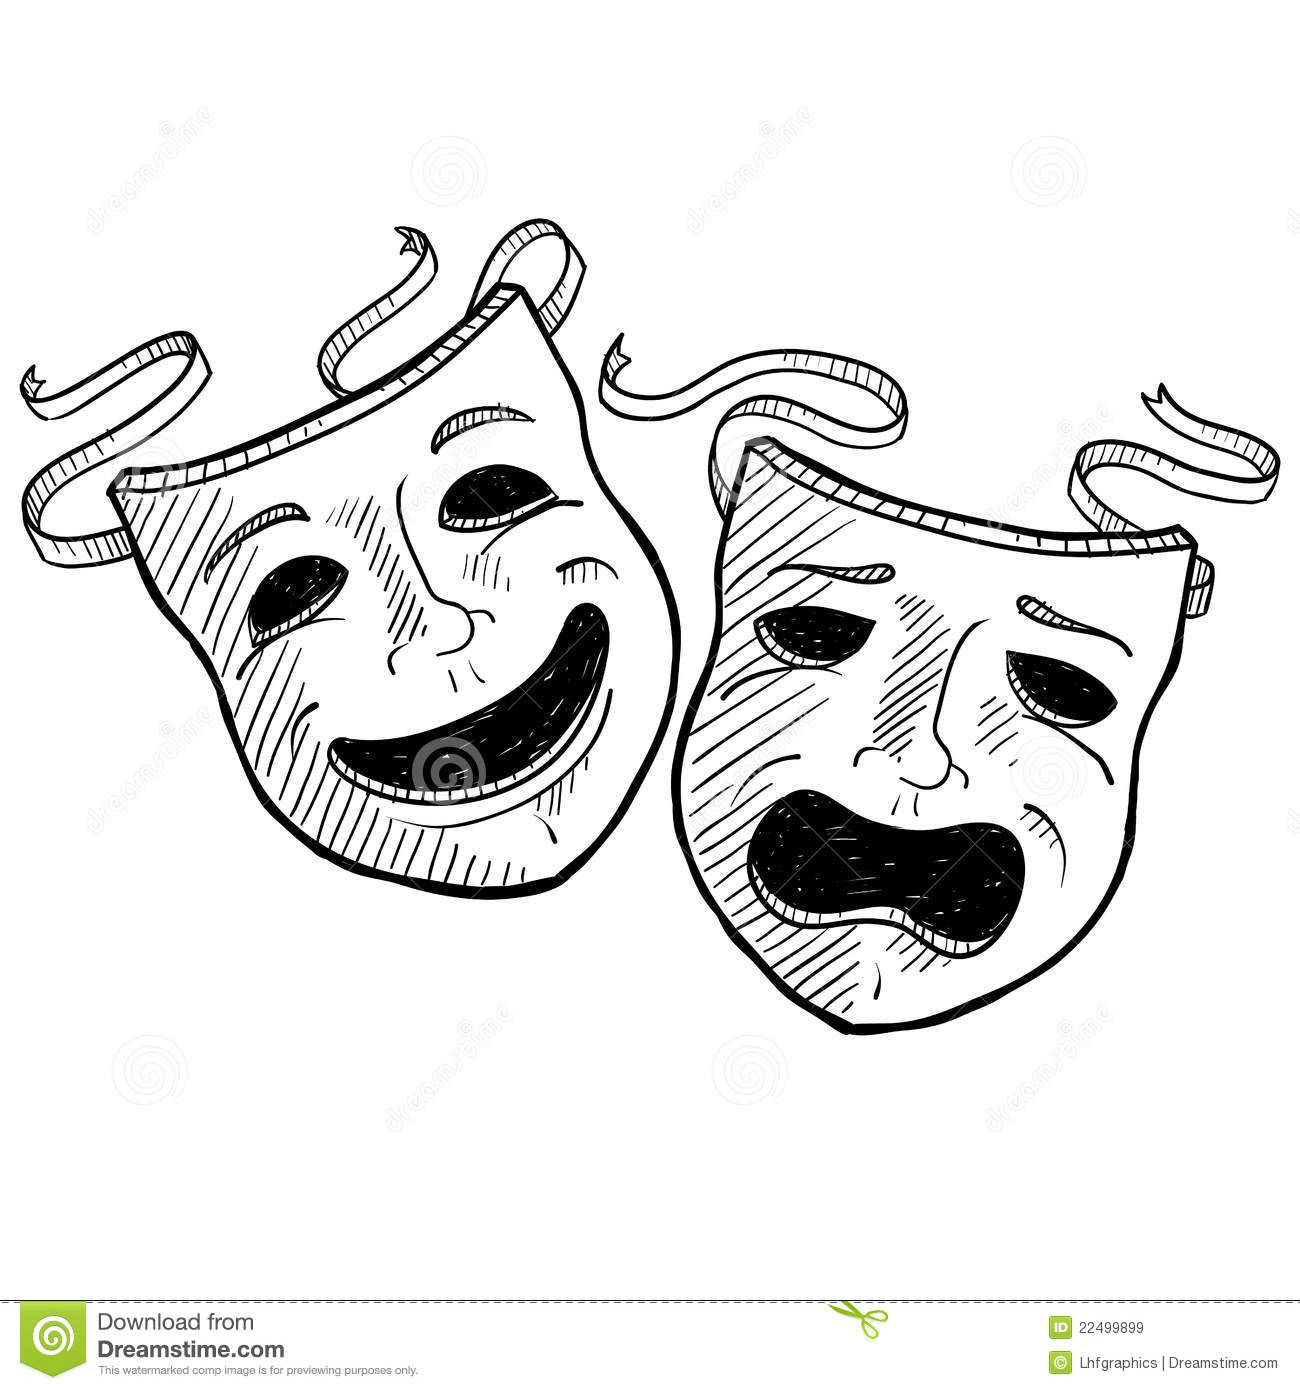 Doodle Style Drama Or Theater Masks Illustration In Vector Format